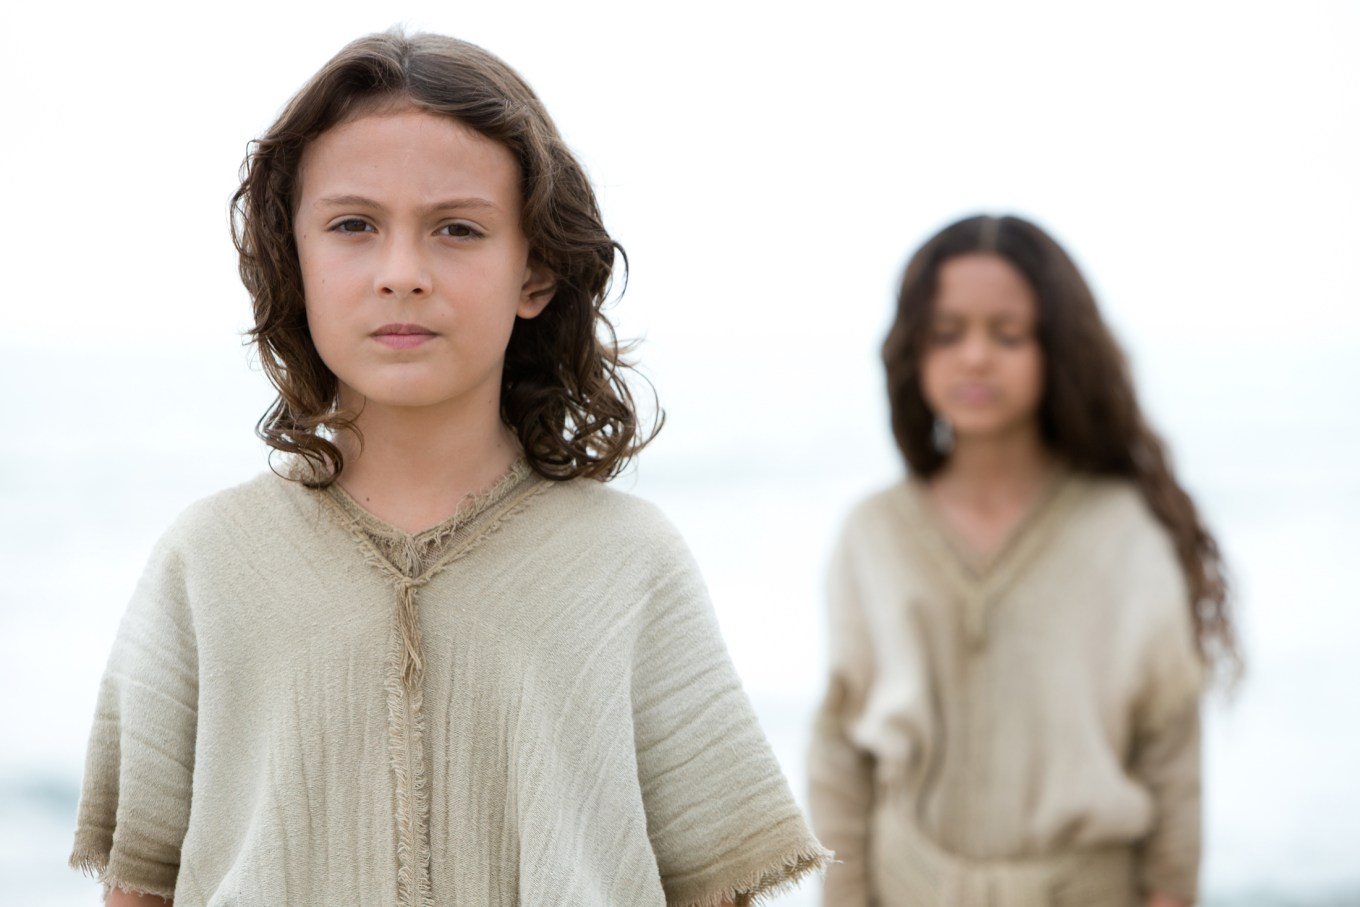 adam greaves-neal as Jesus in THE YOUNG MESSIAH